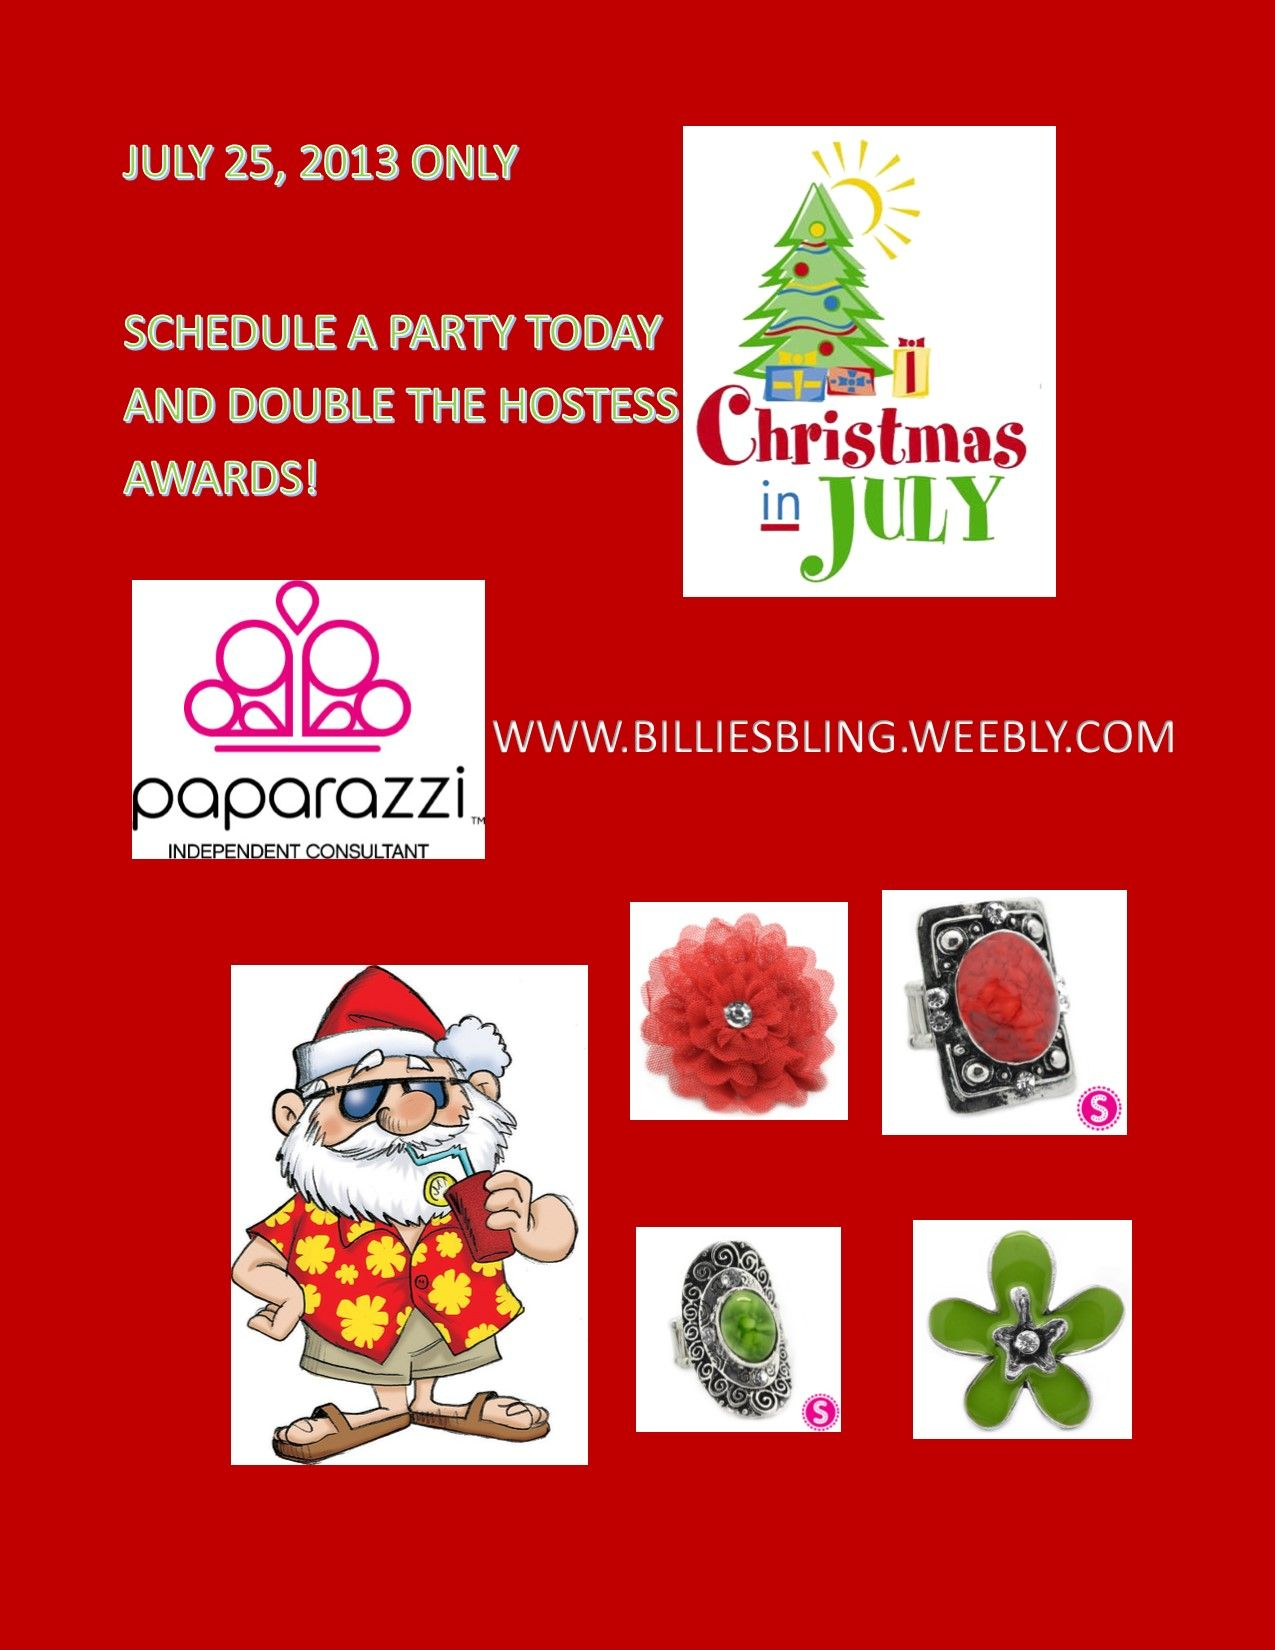 Merry #ChristmasinJuly. I am celebrating by doubling hostess awards. Whether it is an office party, basket party, open house party schedule it today! www.billiesbling.weebly.com